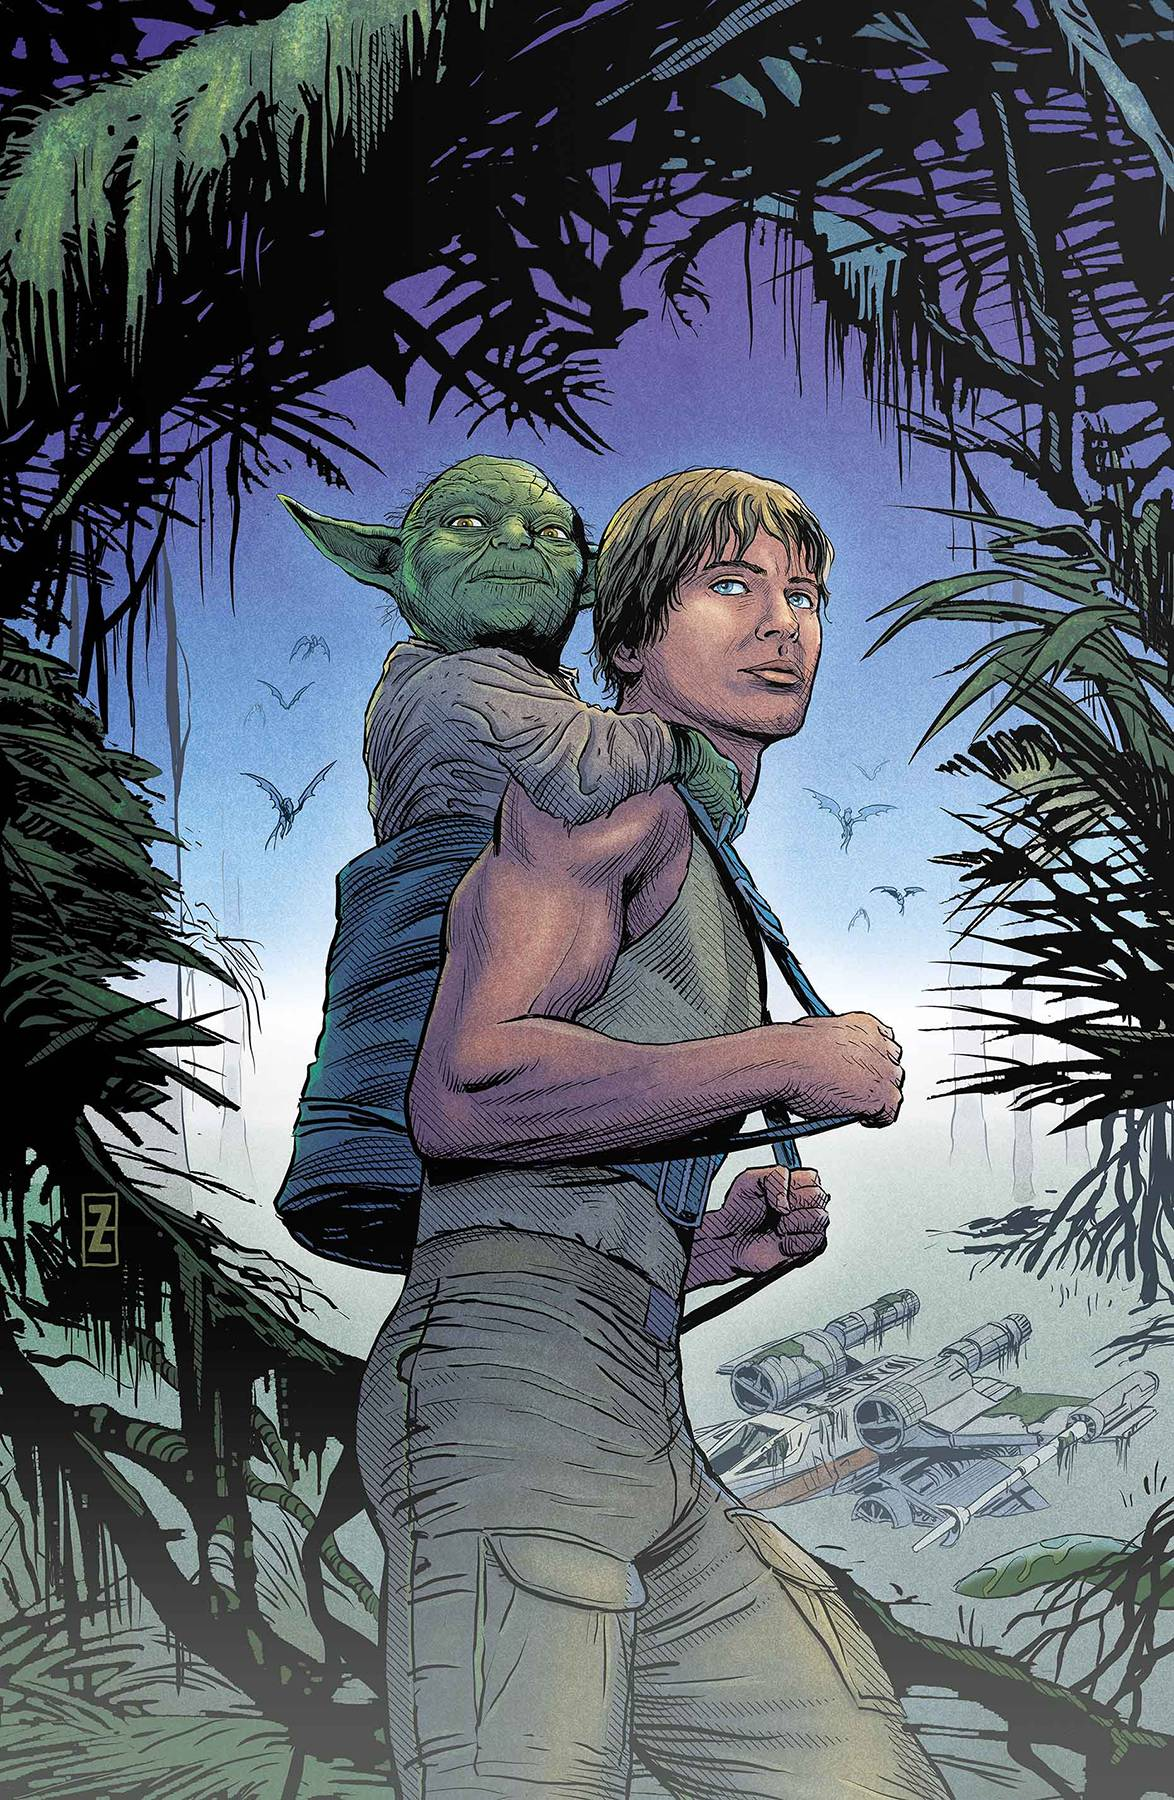 STAR WARS AOR SPECIAL 1 ZIRCHER GREATEST MOMENTS VAR.jpg